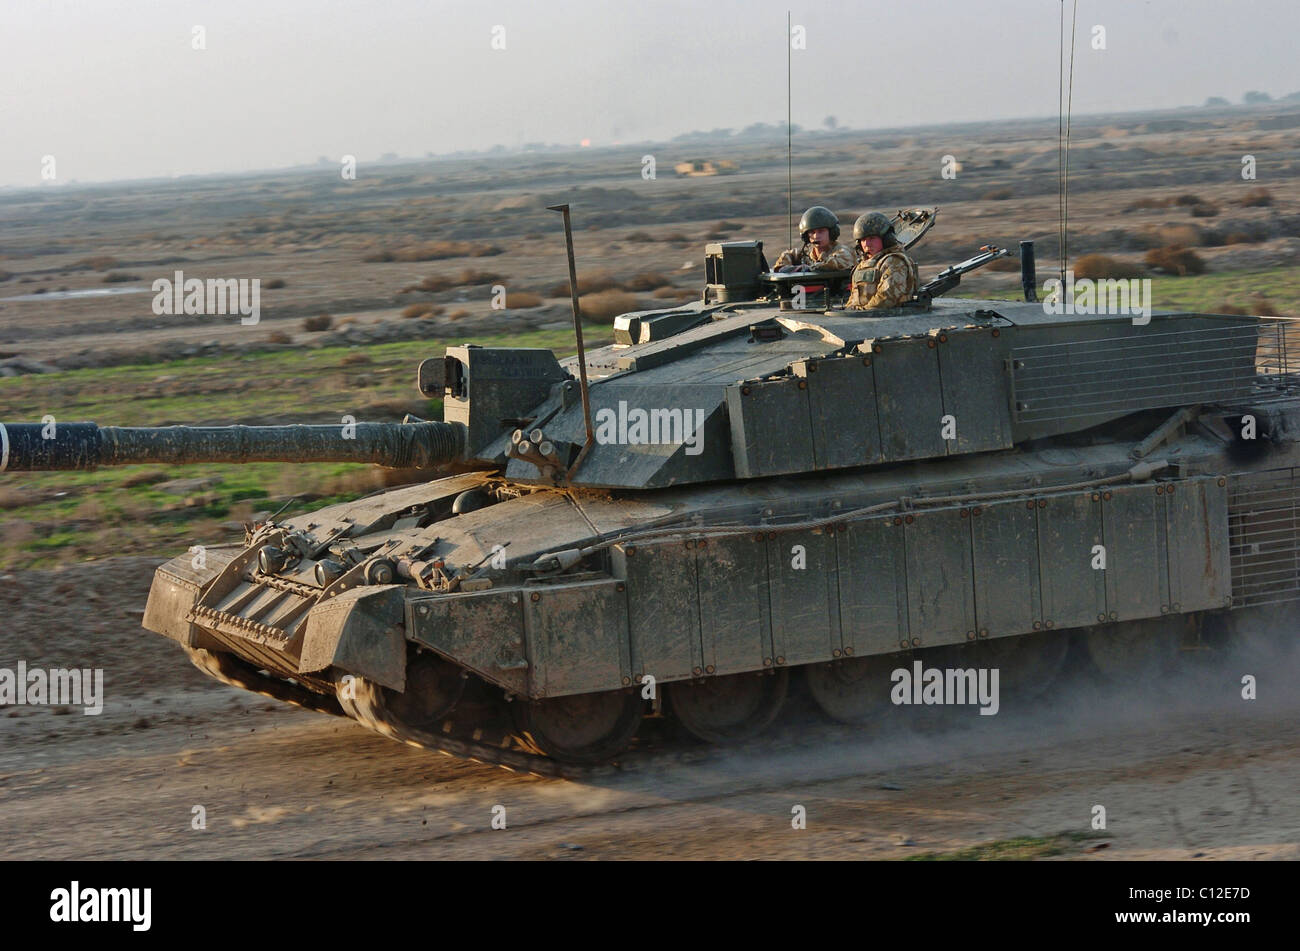 1a6932c097bf FV4034 Challenger 2 is a main battle tank (MBT) currently in service with  the armies of the United Kingdom and Oman.